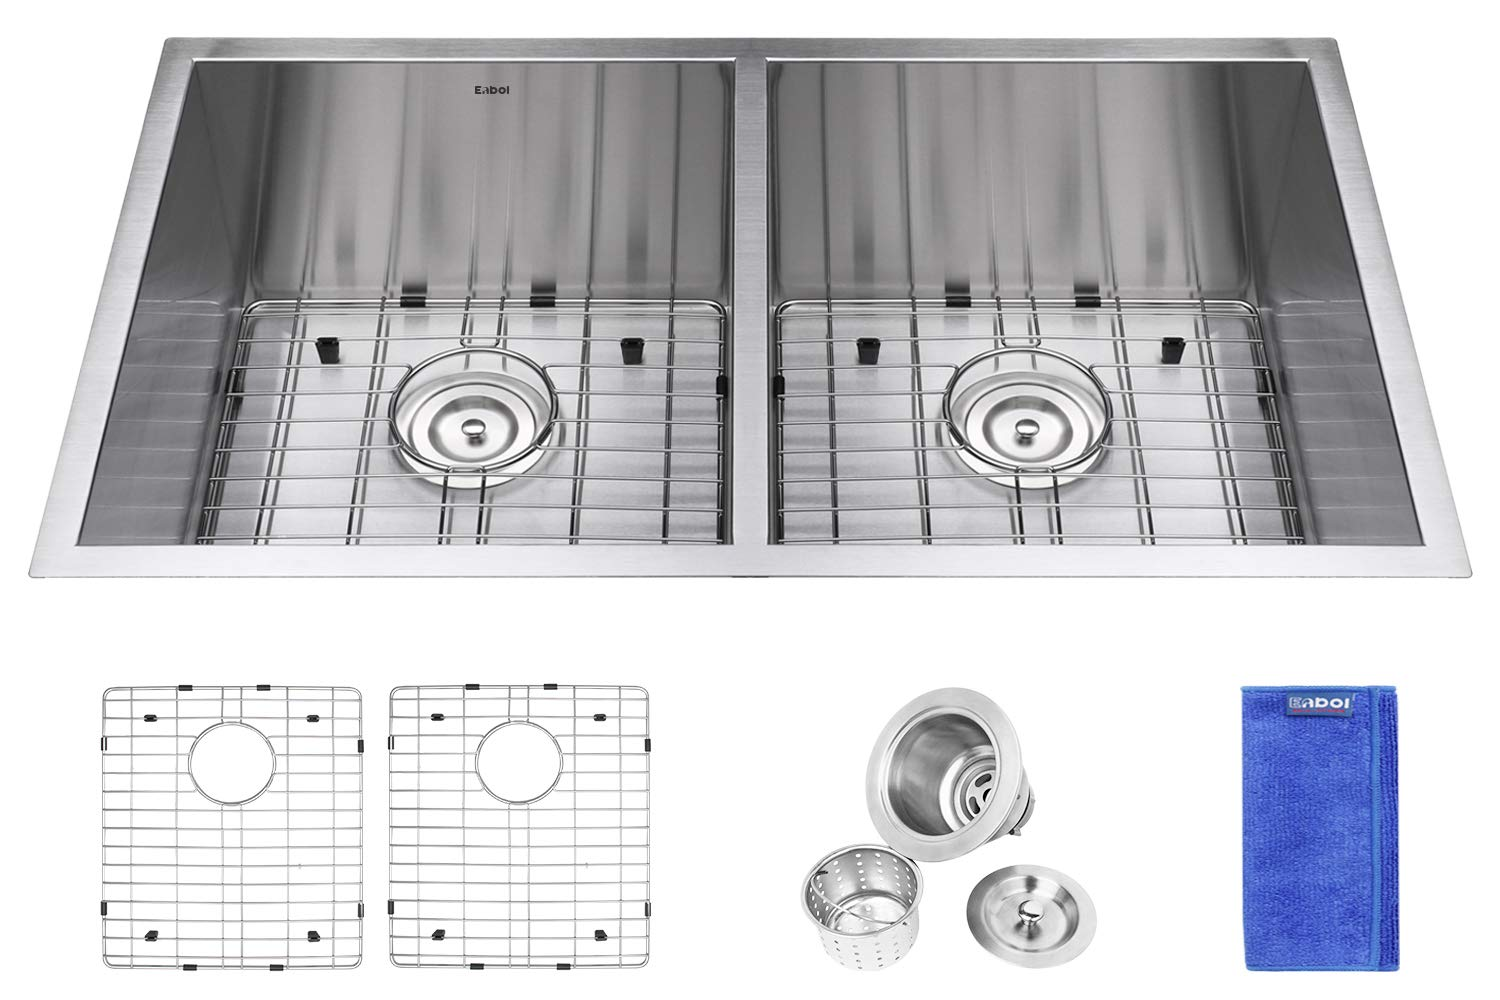 Enbol ESD3319, 33 Inch Undermount 50/50 Double Bowl Premium Stainless Steel Kitchen Sink with Protective Bottom Grid and Strainer, 10 Inch Extra Deep, Zero Radius for More Workspace Modern